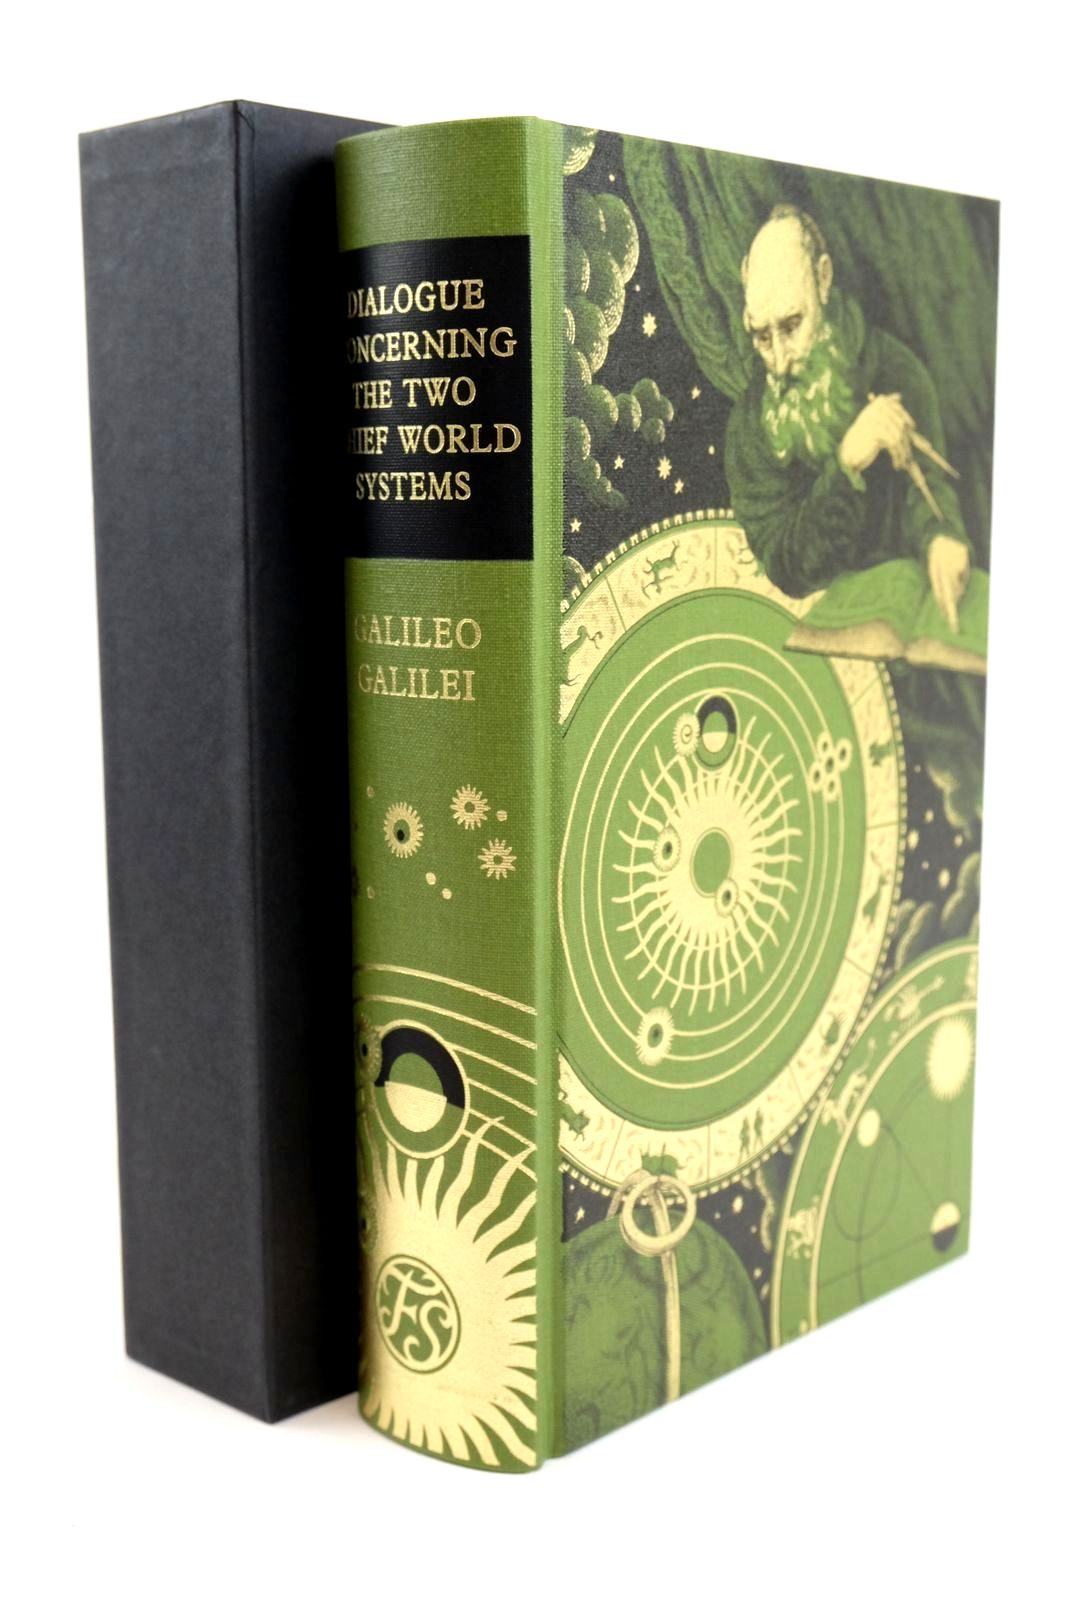 Photo of DIALOGUE CONCERNING THE TWO CHIEF WORLD SYSTEMS: PTOLEMAIC AND COPERNICAN written by Galilei, Galileo Drake, Stillman Einstein, Albert Sobel, Dava published by Folio Society (STOCK CODE: 1318920)  for sale by Stella & Rose's Books